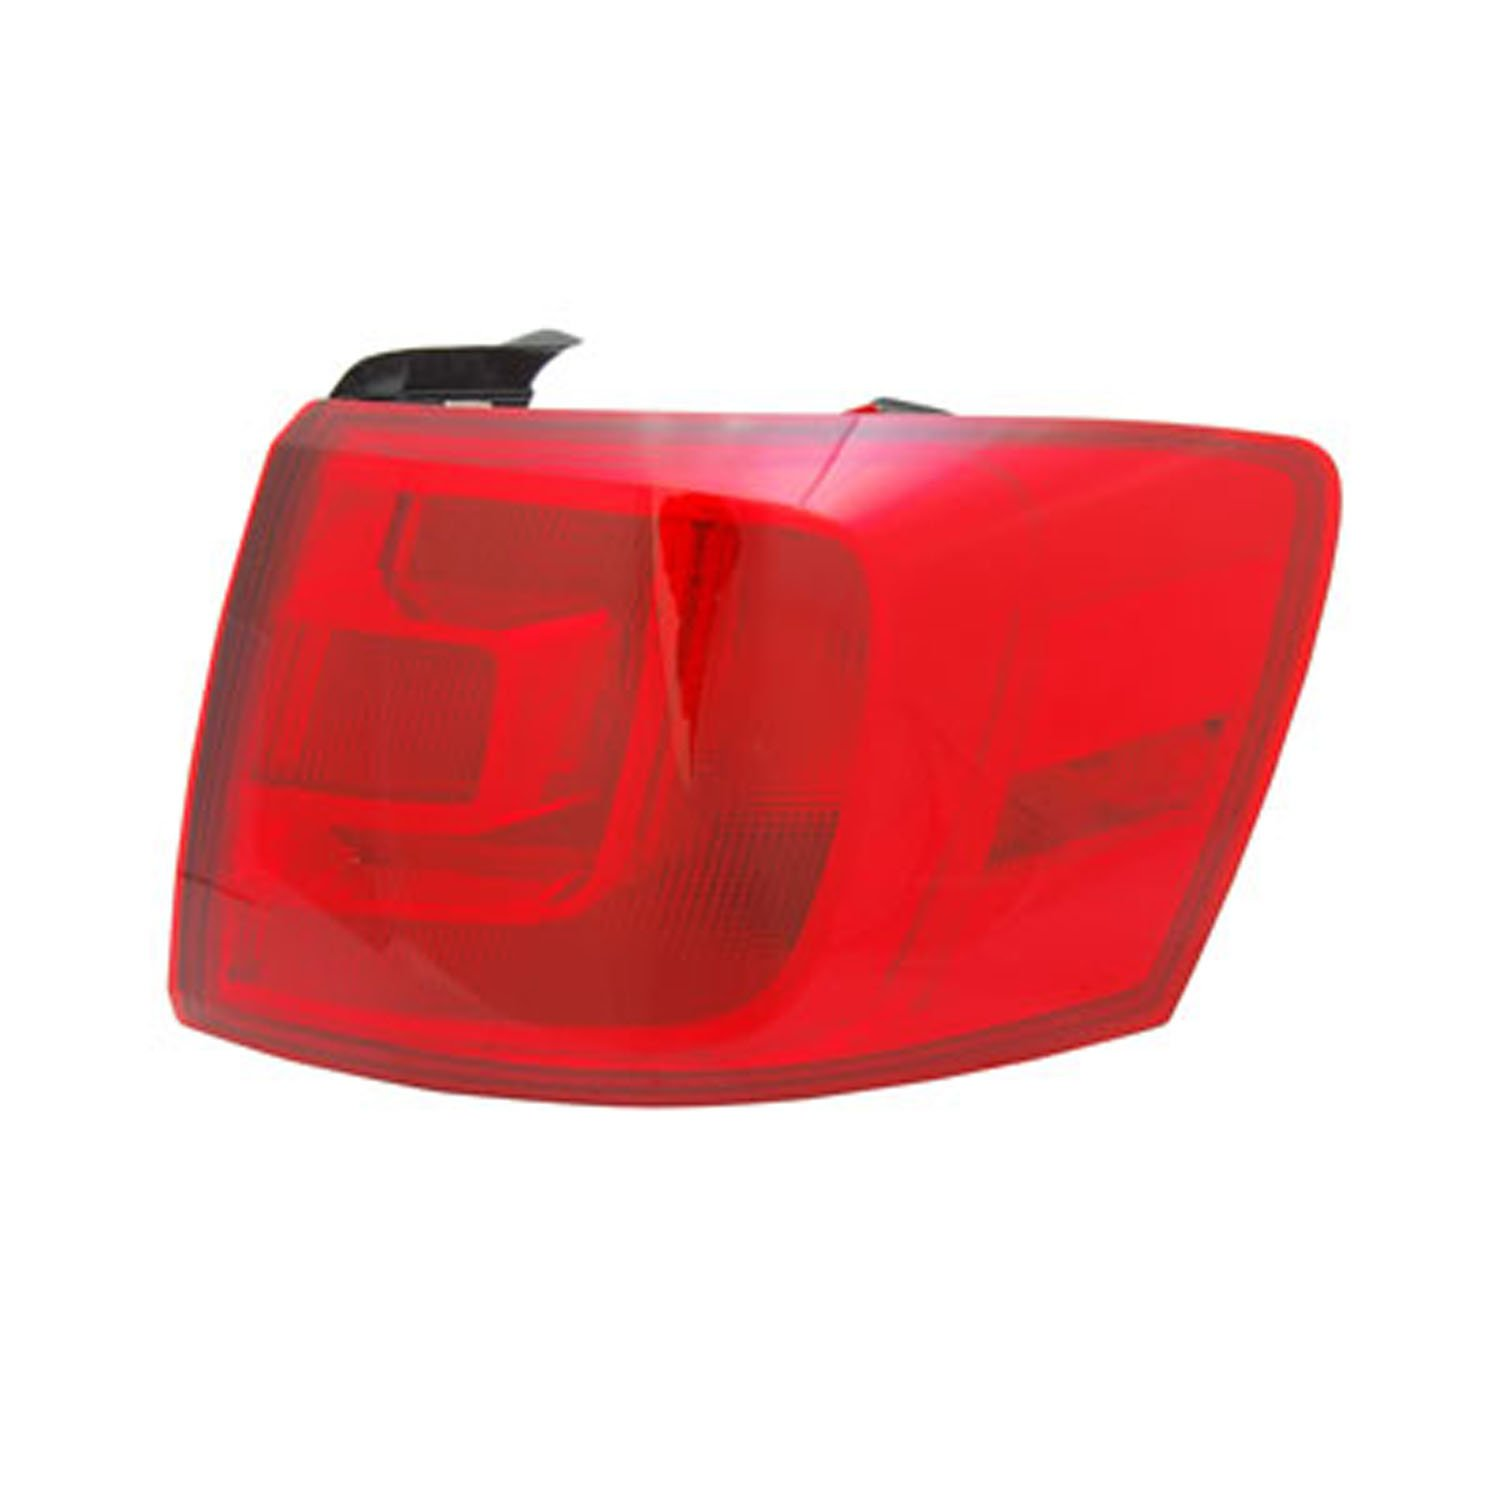 2011-2017 TYPE 6 OE Replacement Tail Light Assembly VOLKSWAGEN JETTA 2011+ Multiple Manufacturers VW2805107V Partslink VW2805107